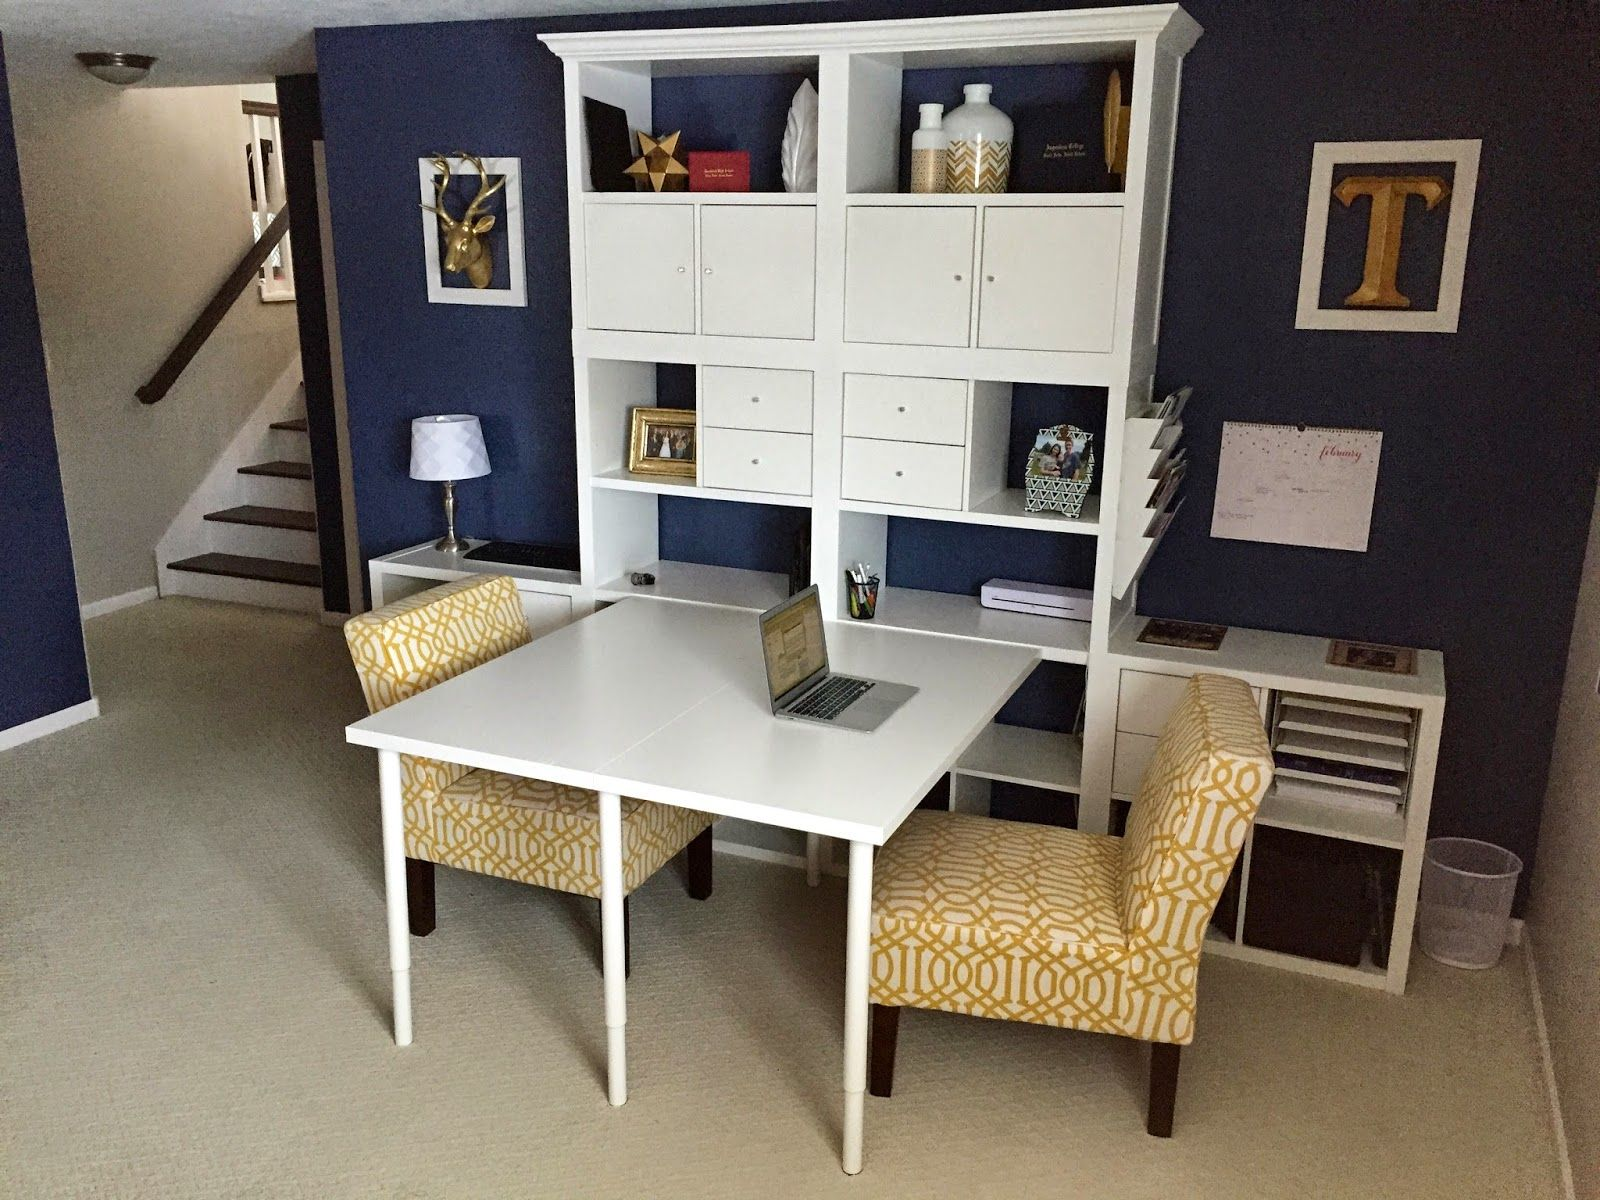 Kallax Schrank Pin By Violeta Ivanova On Home Decoration In 2019 Ikea Office